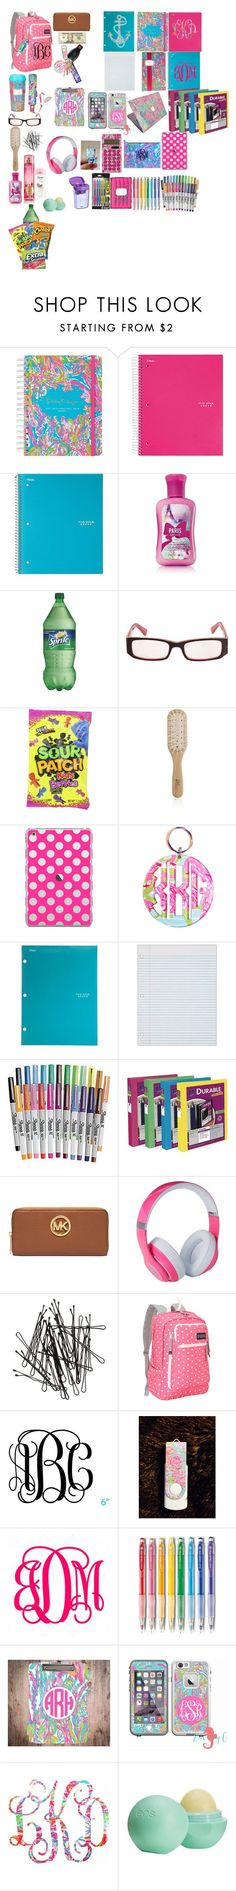 """""""back to school preppy school supplies for teens"""" by turnerjazmyne on Polyvore featuring Lilly Pulitzer, Philip Kingsley, Casetify, OPTIONS, Sharpie, Avery, Michael Kors, Beats by Dr. Dre, H&M and JanSport - big leather bags, ladies shoulder bags, crossbody clutch bags *ad"""